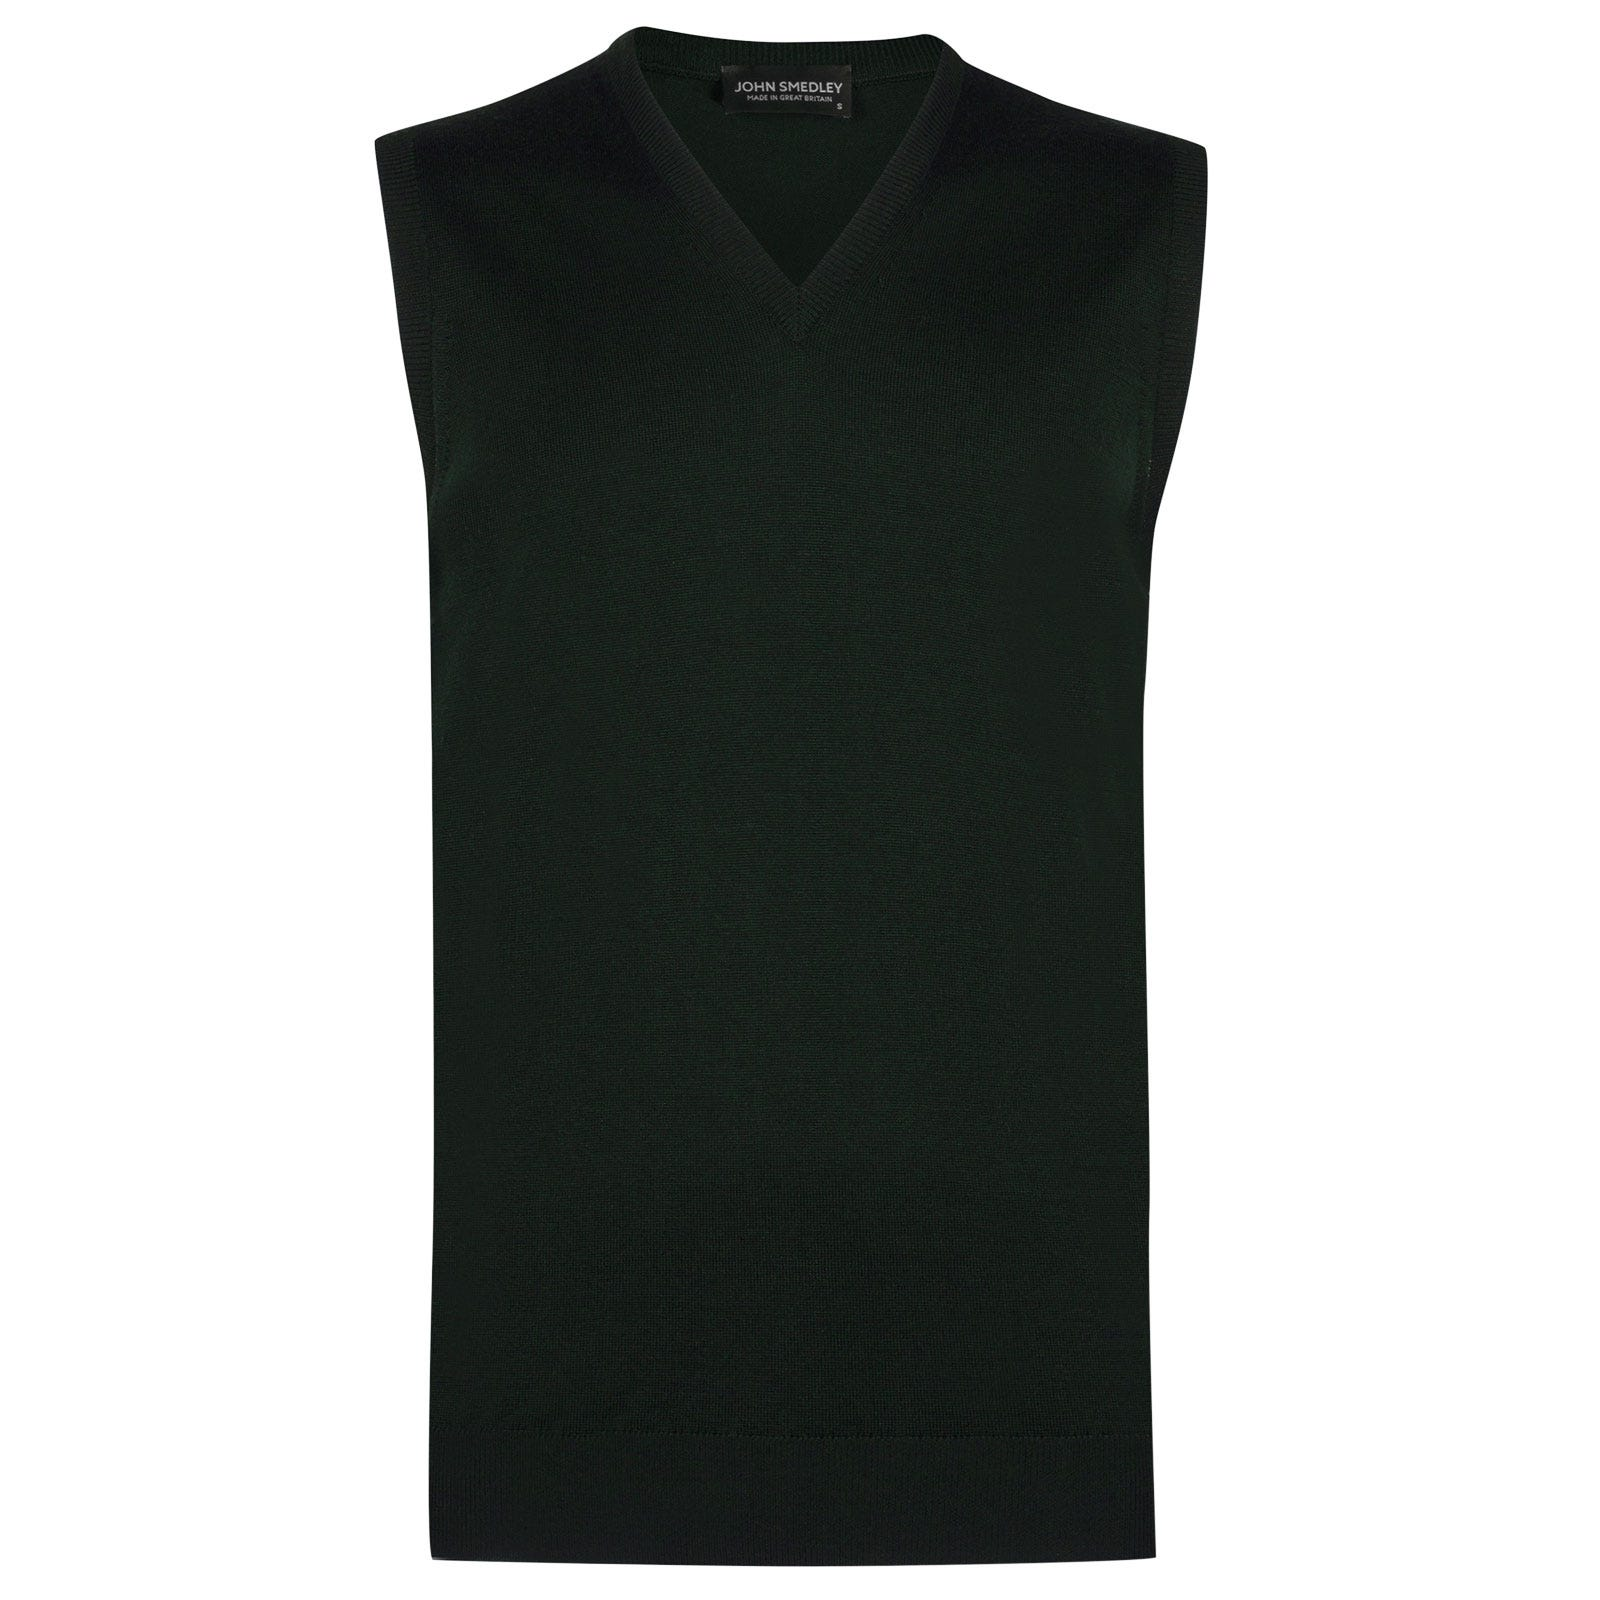 John Smedley hadfield Merino Wool Slipover in Racing Green-XL